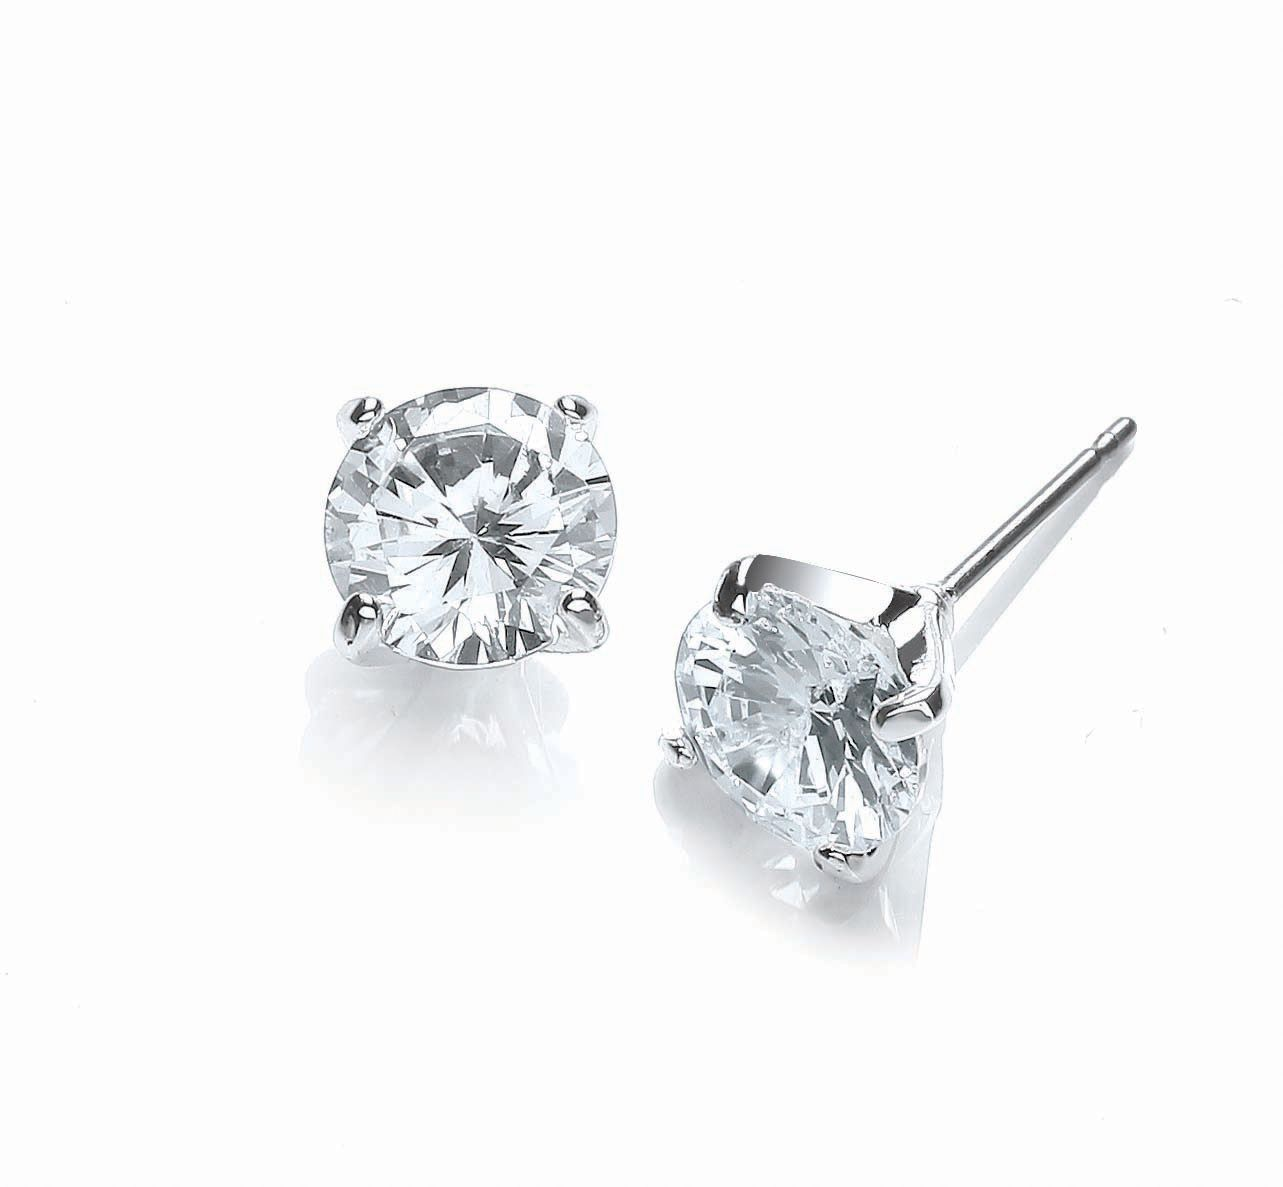 buckley london rhodium large stud cz earrings